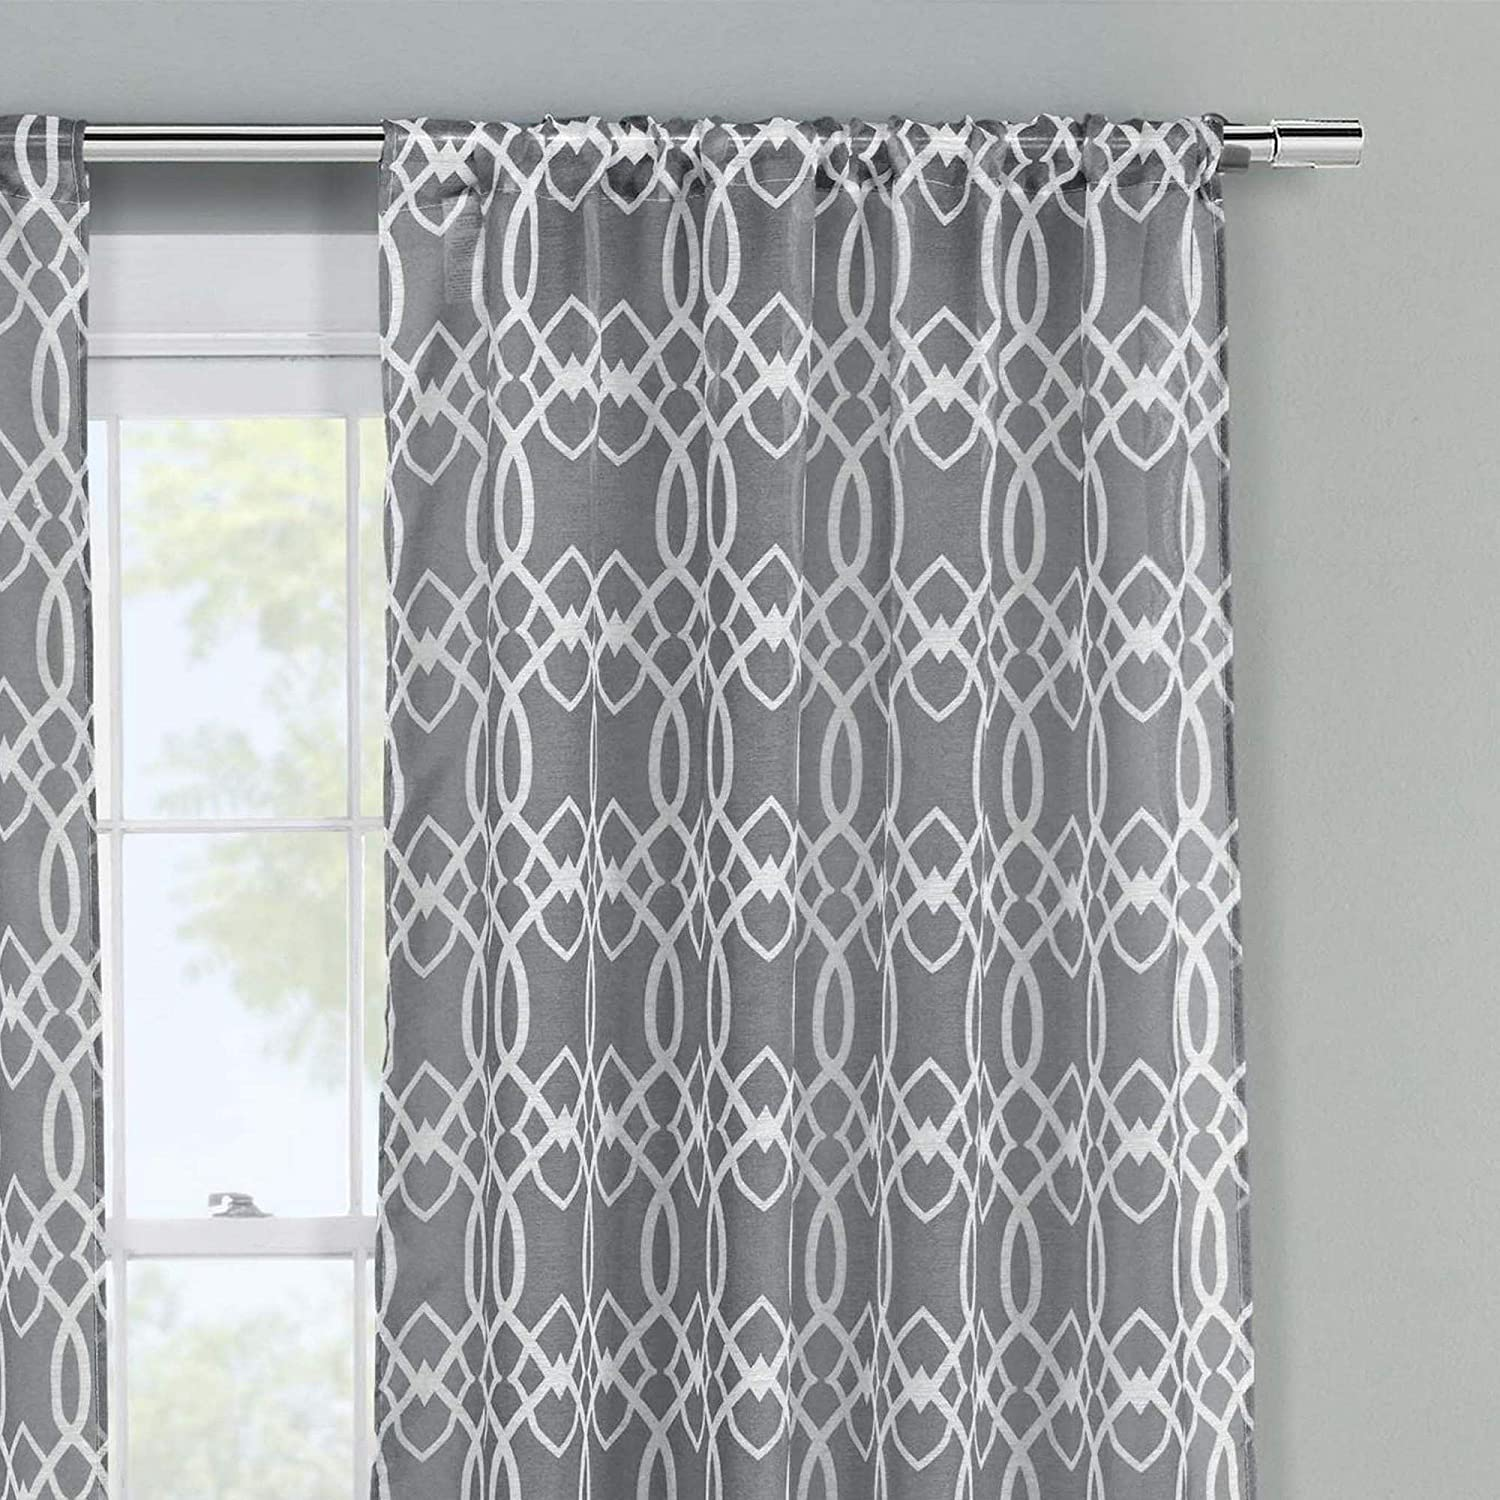 Newbella Printed Geometric Sheer Pole Top Window Curtains for Living Room /& Bedroom NBPTP=12 //10787 51 X 84 Inch - Taupe Set of 2 Panels Assorted Colors Duck River Textiles